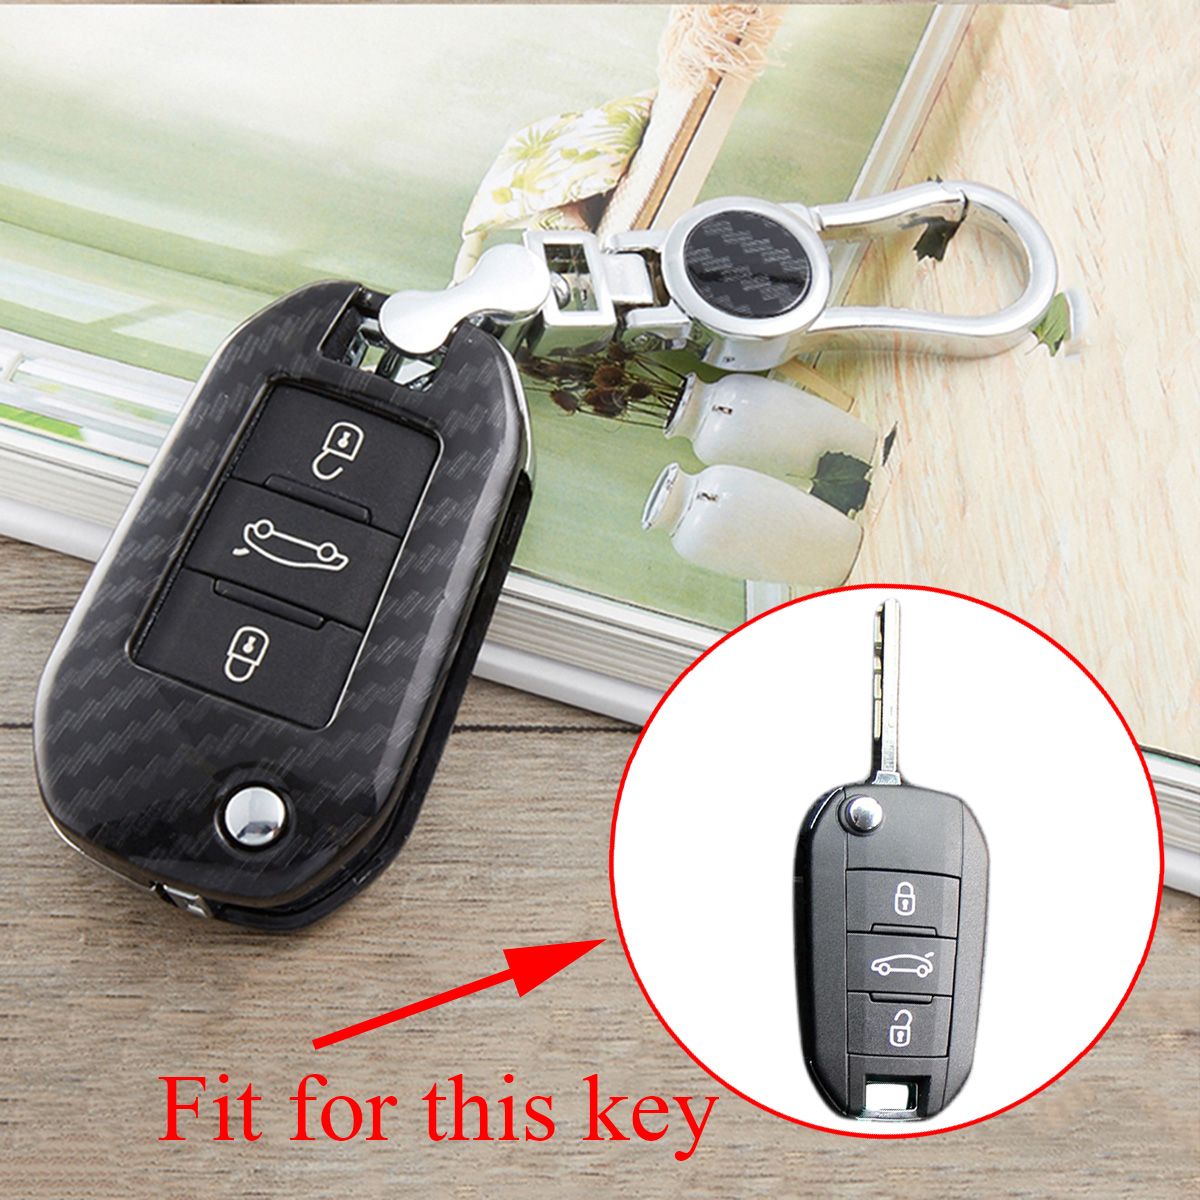 Carbon Fiber Texture Key Fob Case Holder Bag Cover Fit For Peugeot <font><b>Citroen</b></font> <font><b>C4</b></font> C3-XR C-Elysee <font><b>2016</b></font> 2017 2018 Accessories Decorate image